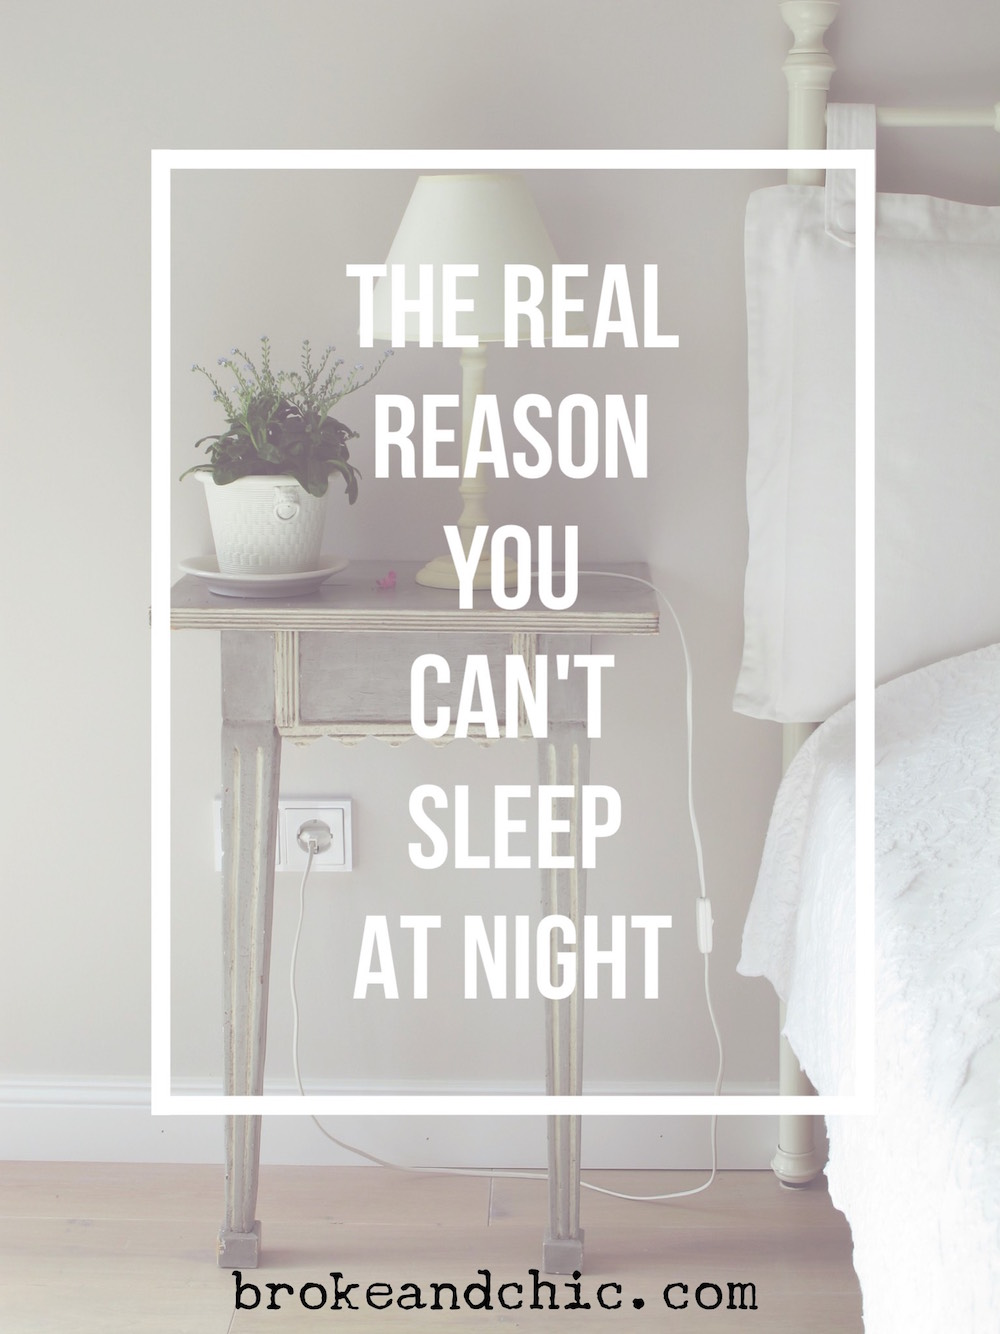 The Real Reason You Can't Sleep At Night // www.brokeandchic.com